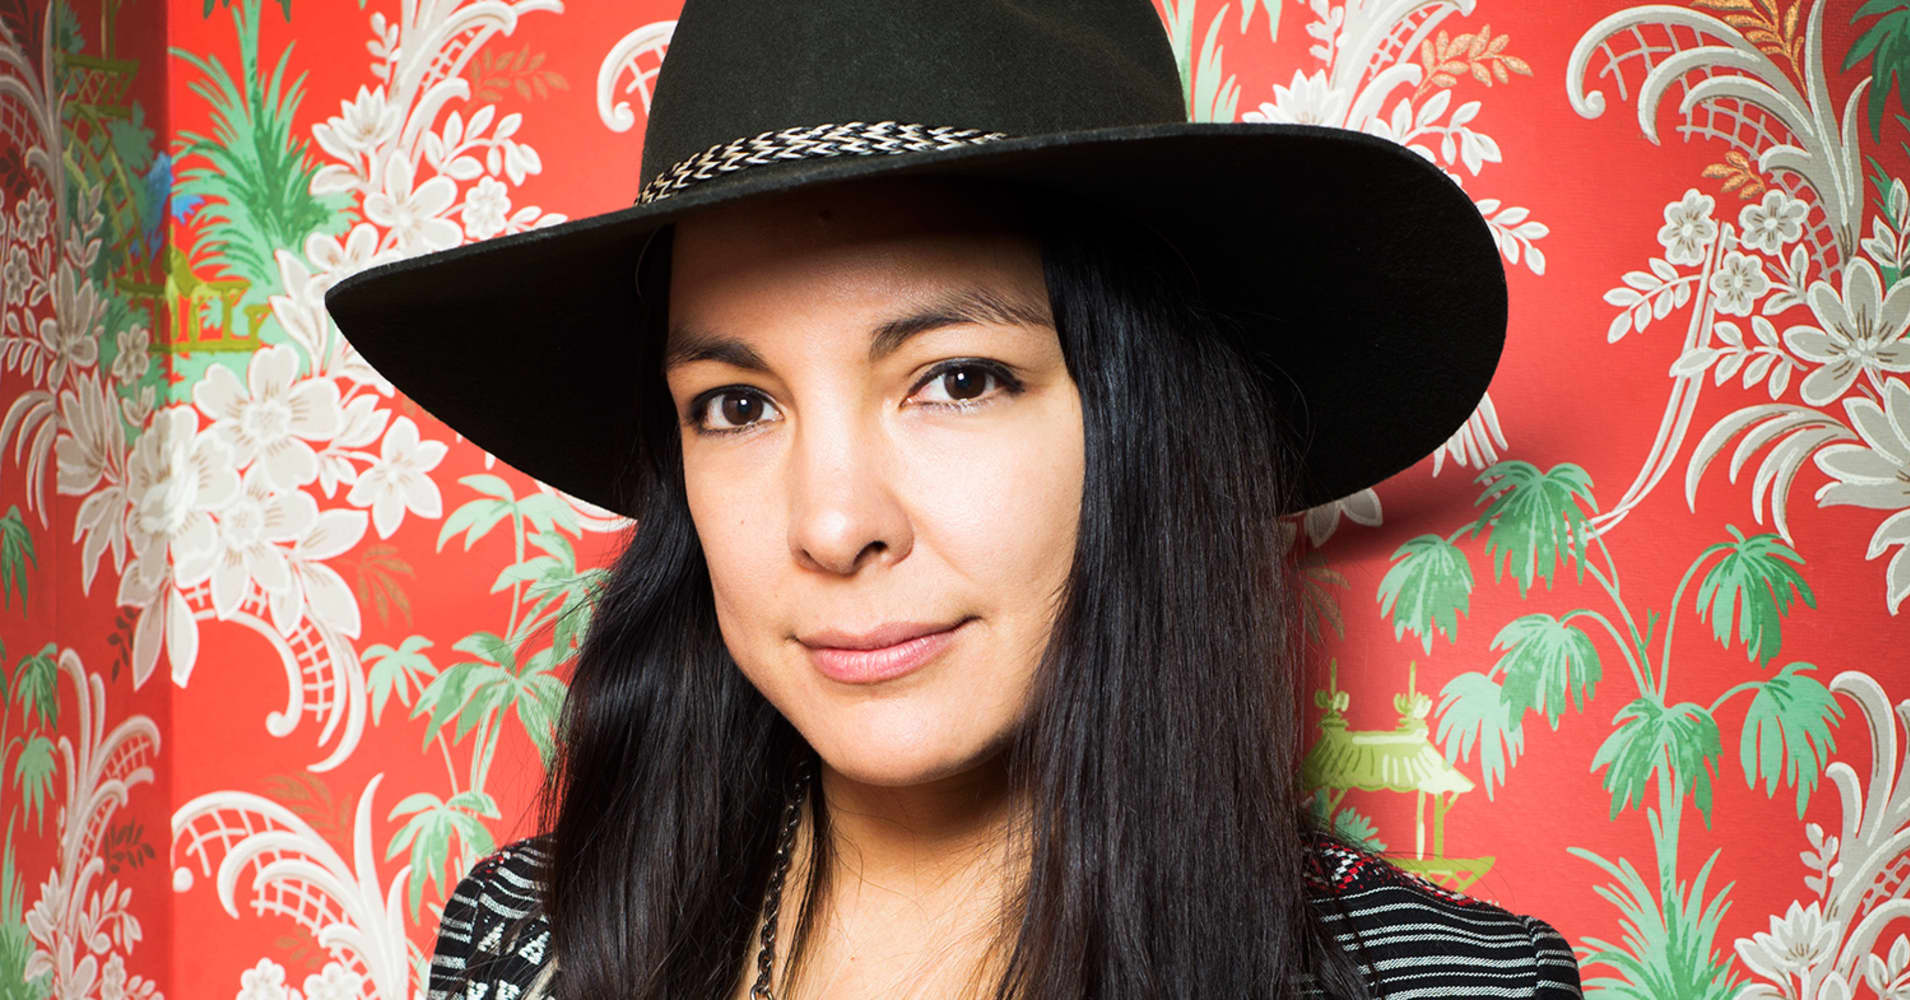 Miki Agrawal, founder and CEO of Thinx.